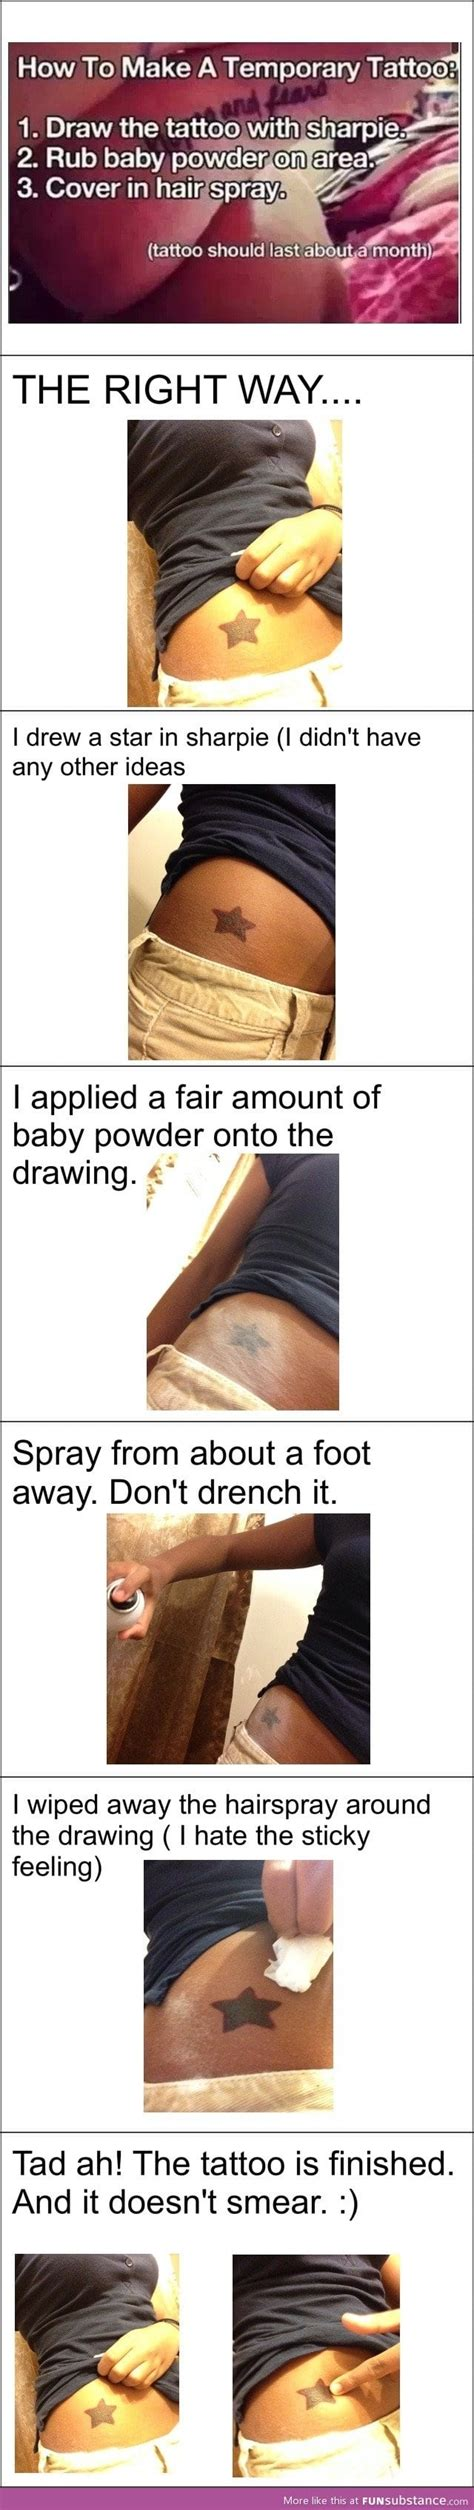 how to make a sharpie tattoo make a sharpie that lasts a month funsubstance